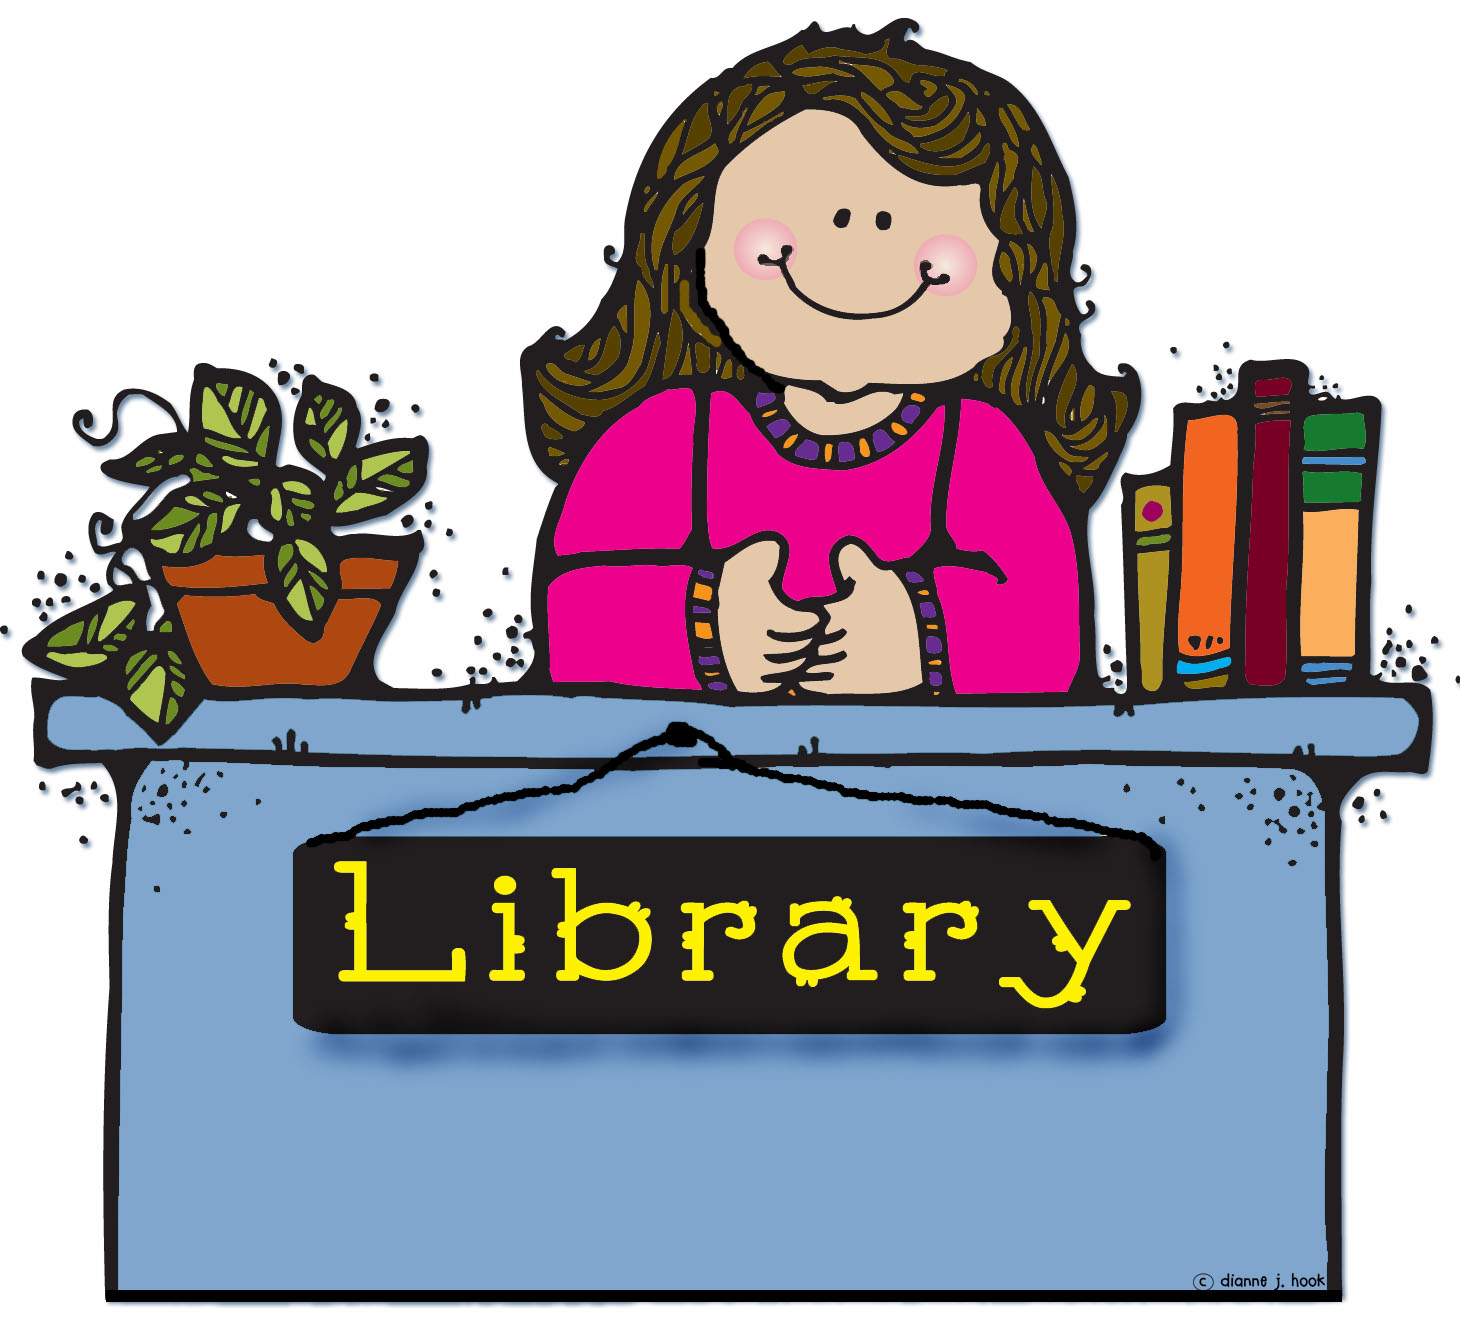 School librarian clipart 8 » Clipart Station.